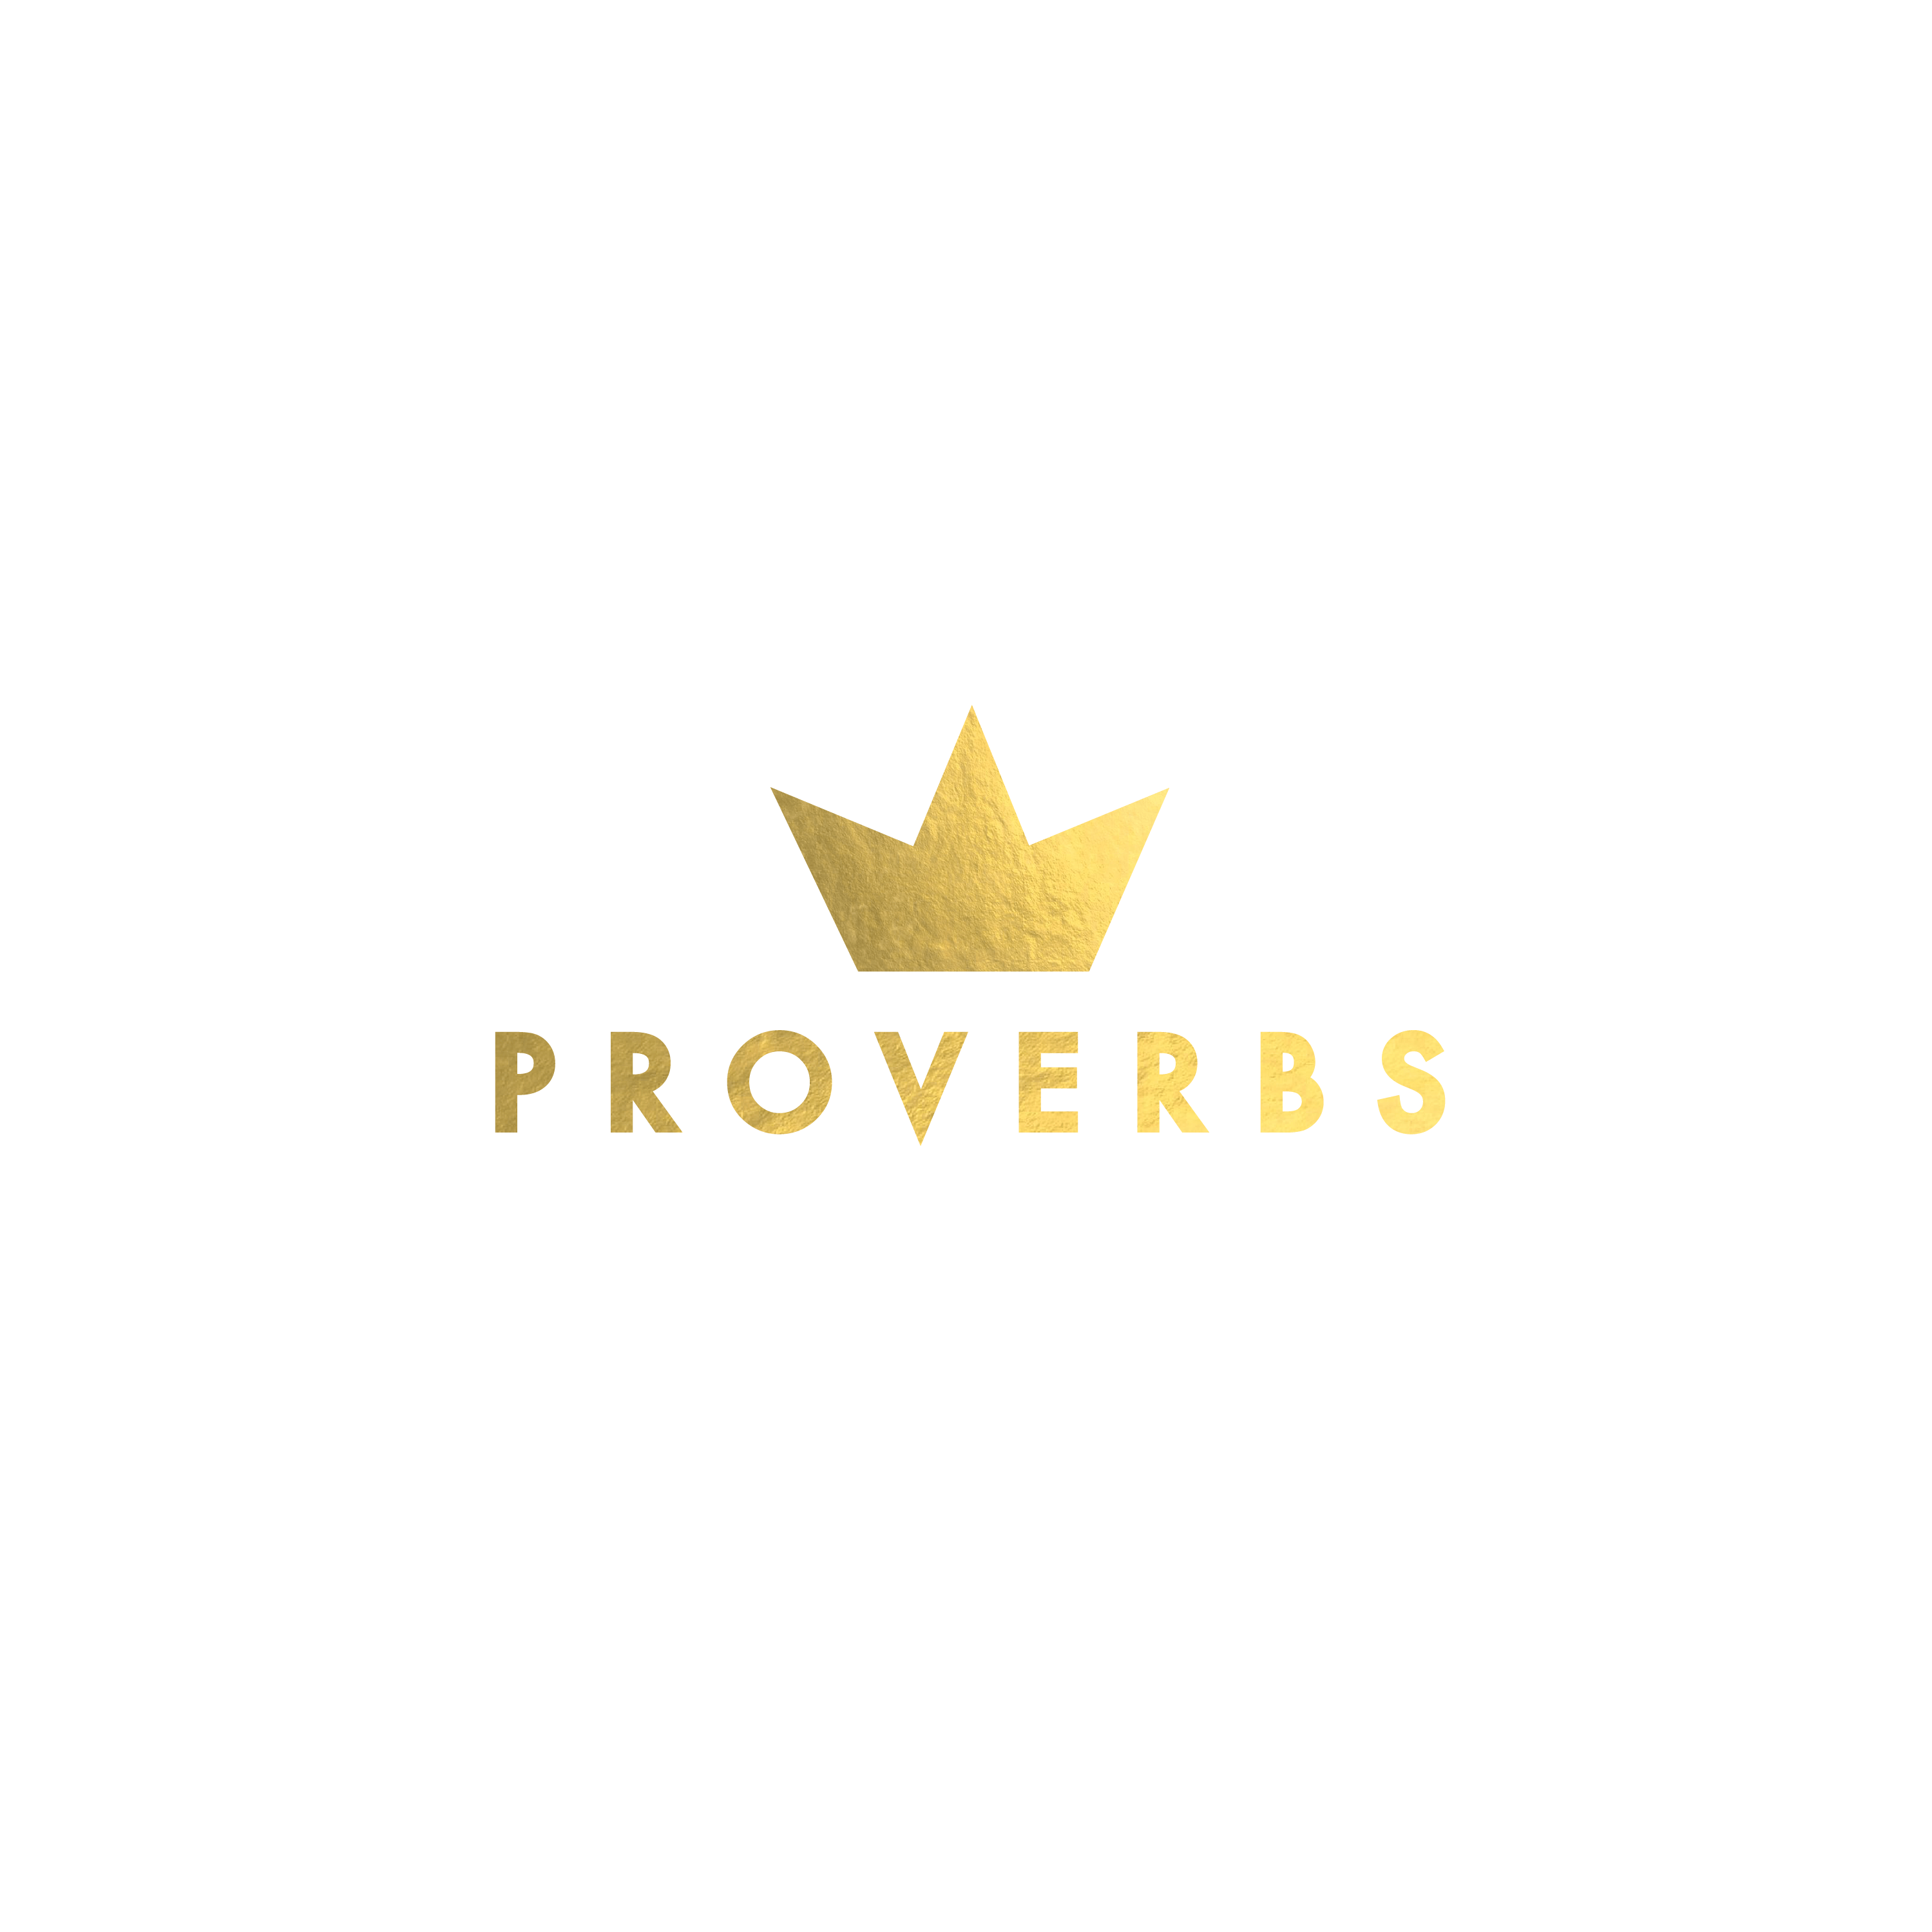 proverbsbrand